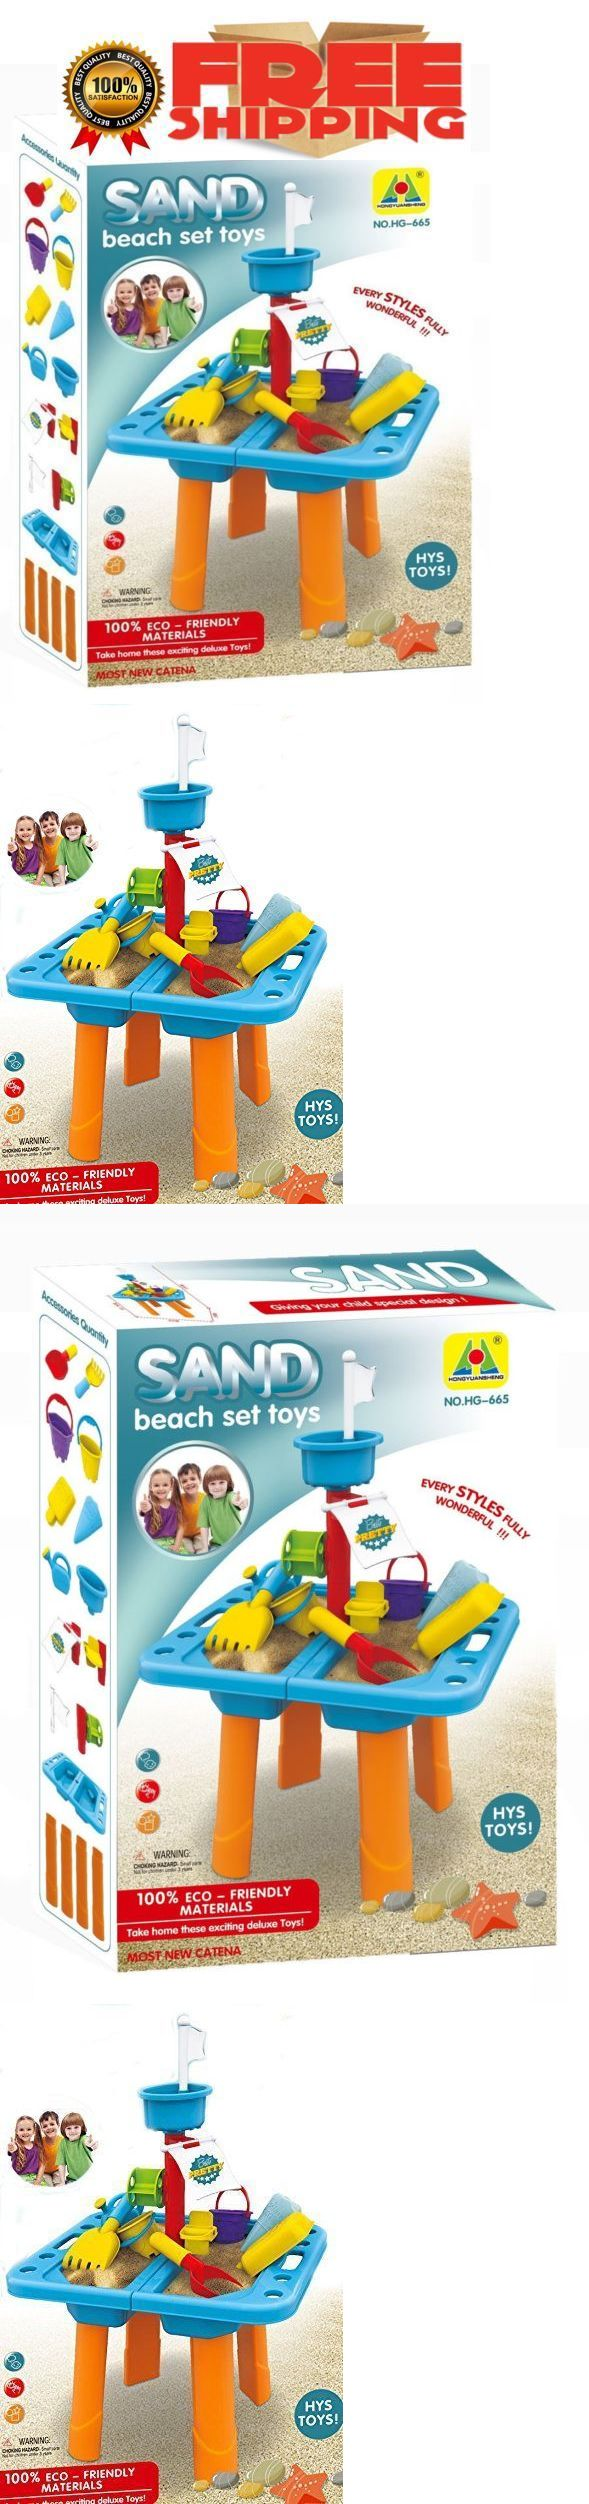 Sandbox Toys and Sandboxes 145990: Kids Sandbox 2 In 1 Sand And Water Wheel Table With Beach Sand Toys Set Outdoor -> BUY IT NOW ONLY: $34.5 on eBay!